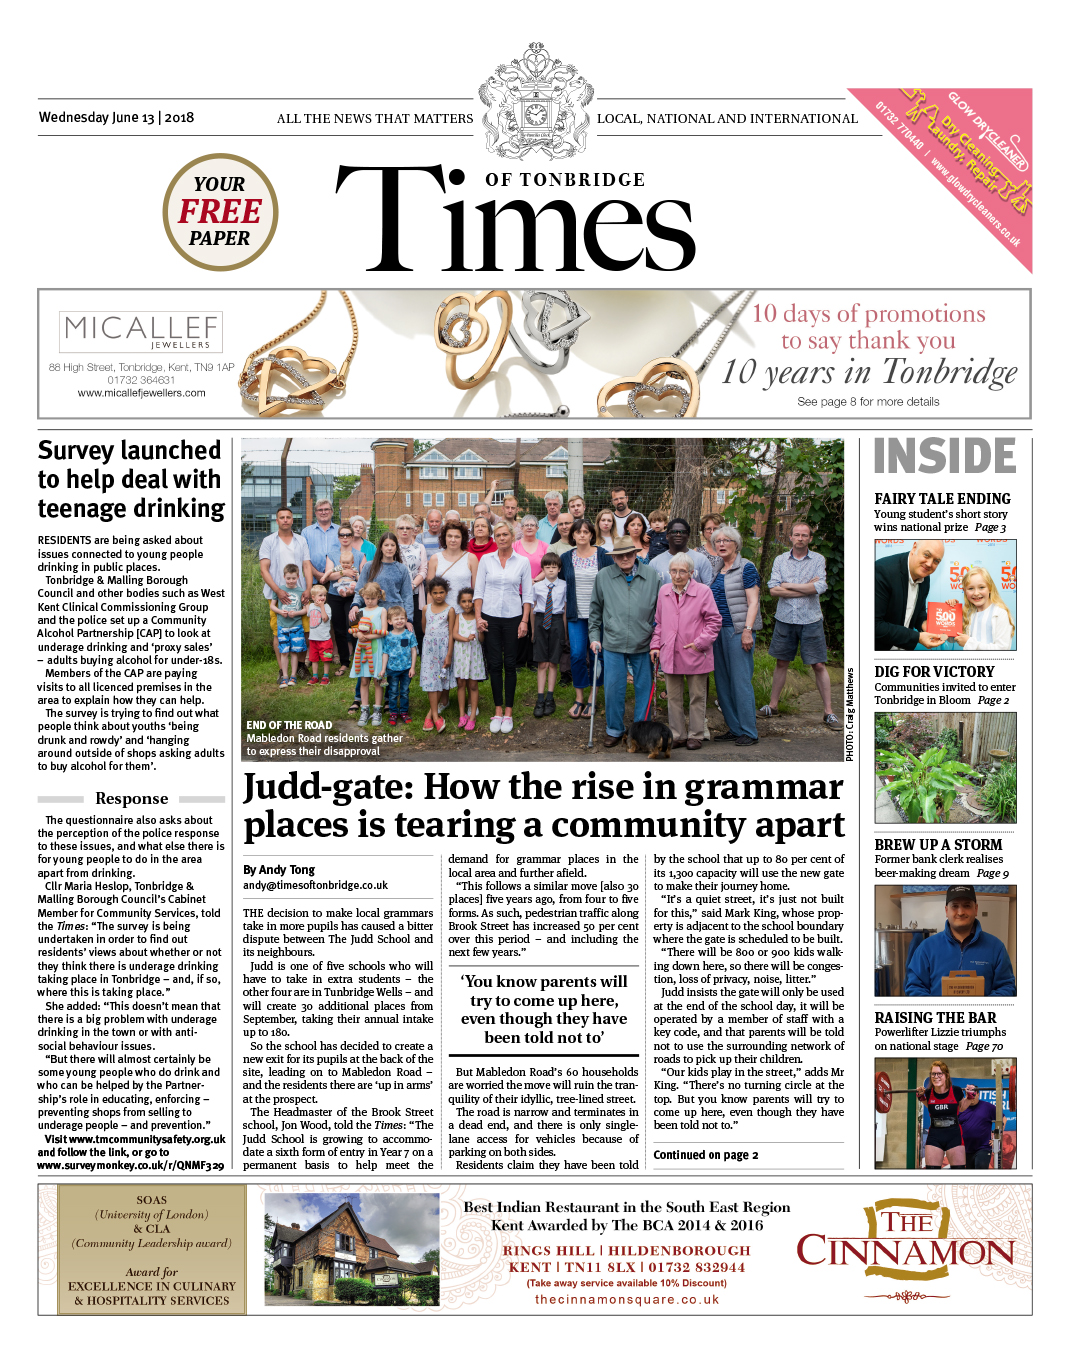 Read the Times of Tonbridge 13th June 2018